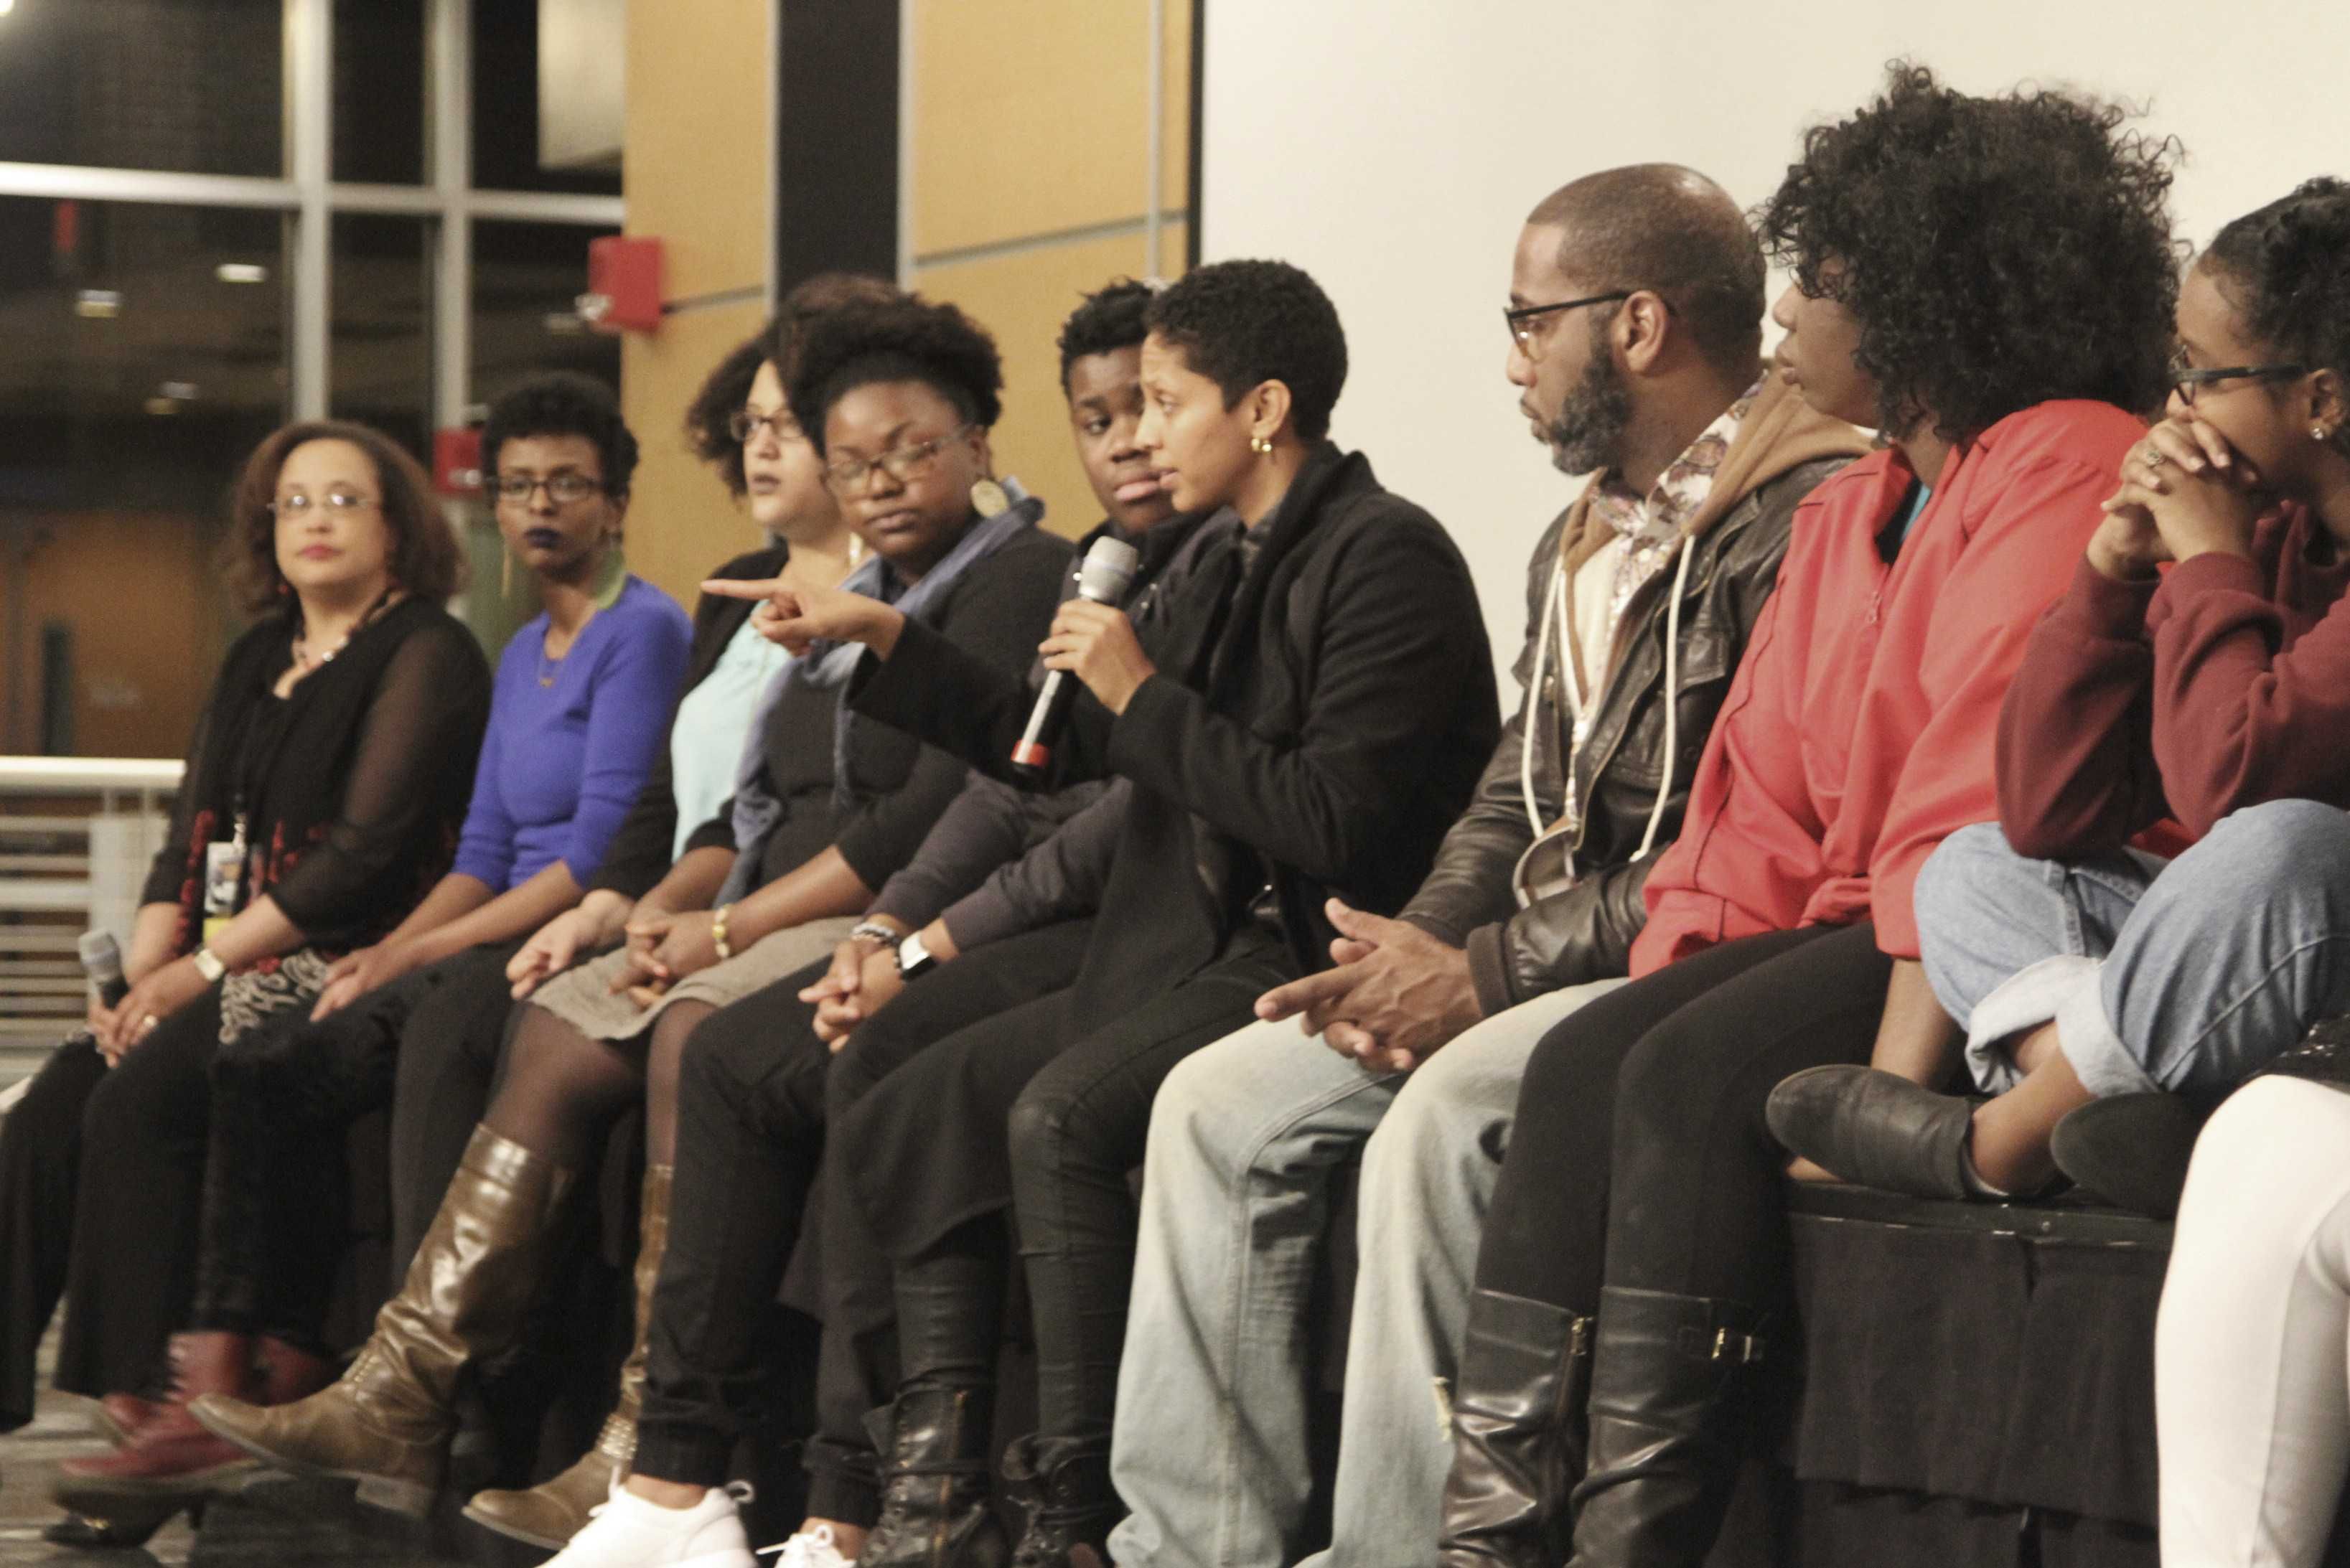 Janaya Khan (center), the founder of the BLM movement in Toronto, Canada, sat alongside leaders of the Minnesota chapter of BLM while they answered students' questions regarding allyship, self-care and the history of activism.            Photo by Henry Nieberg '19.